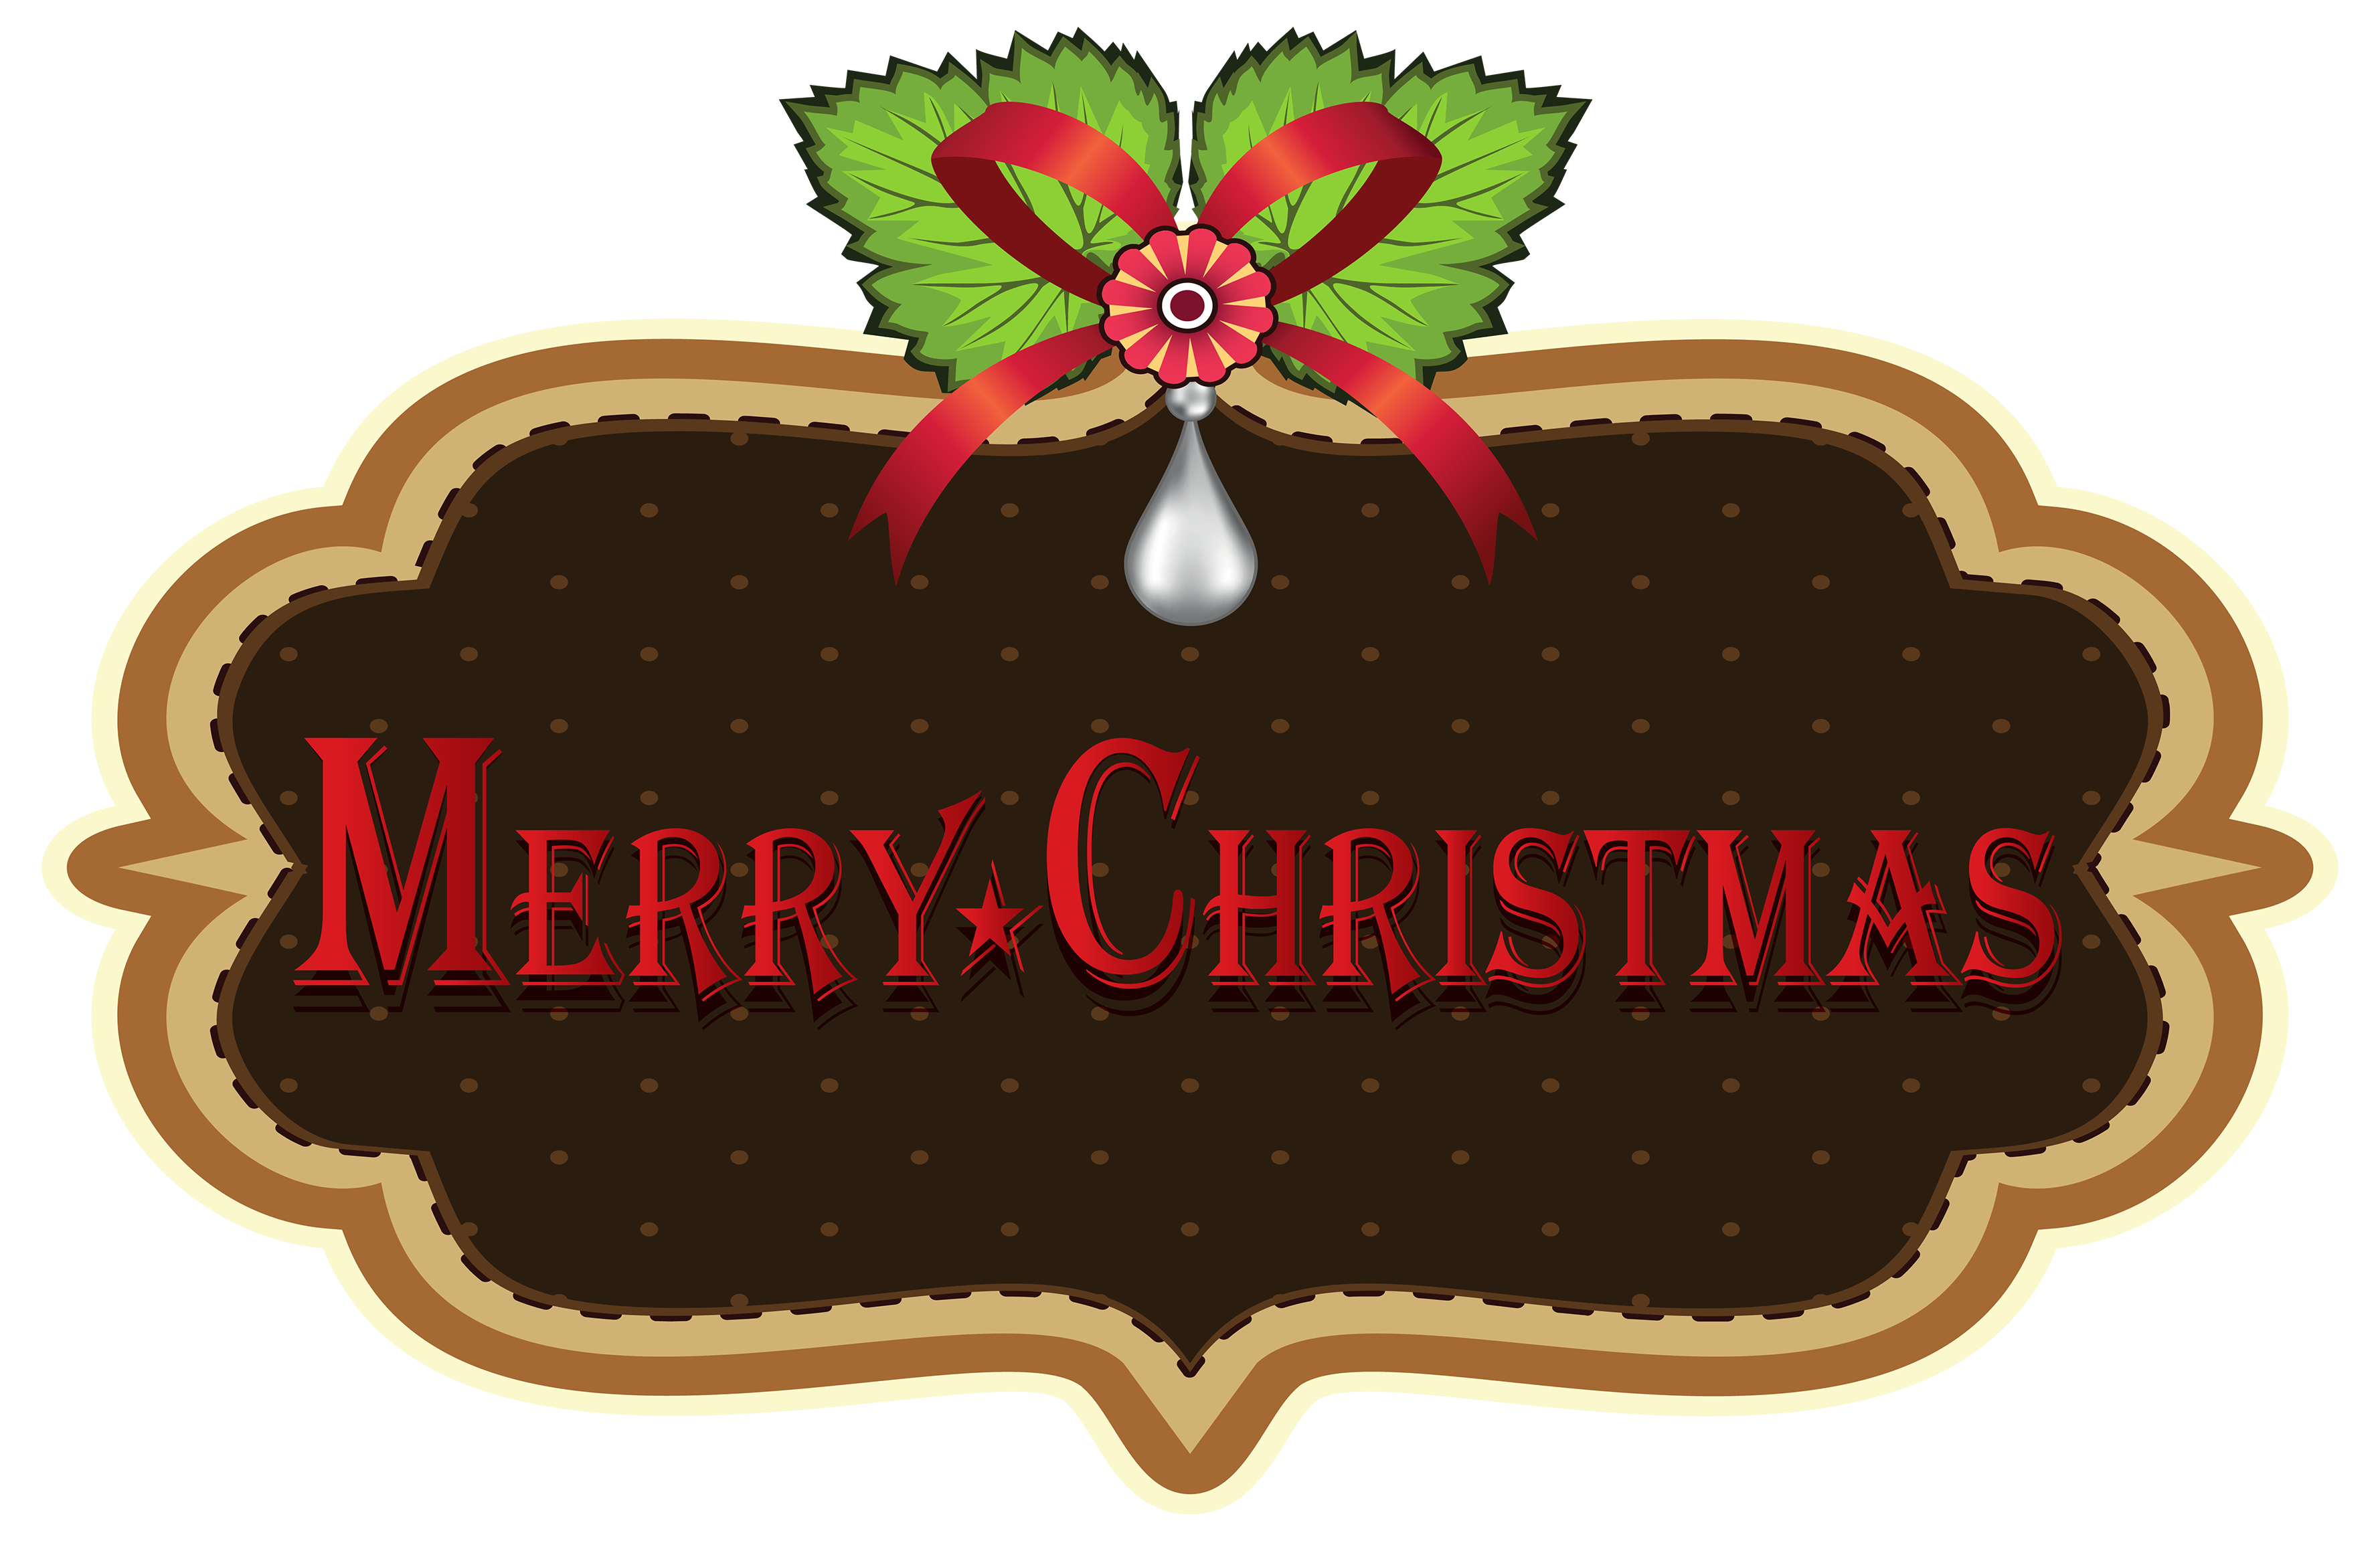 Merry christmas clipart images clip art transparent download Merry Christmas Label PNG Clipart - Best WEB Clipart clip art transparent download